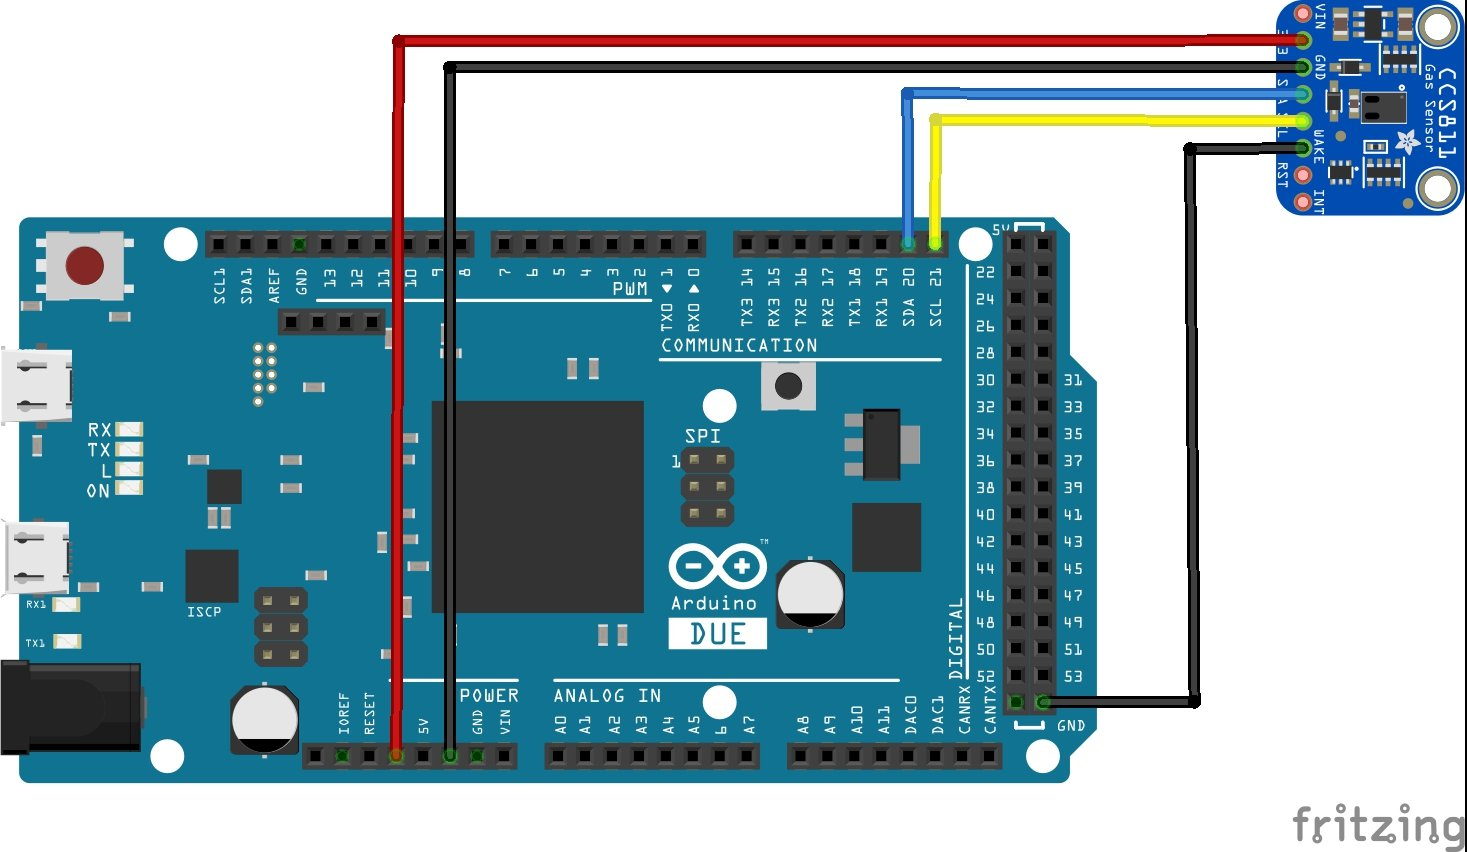 arduino due and CCS811 layout